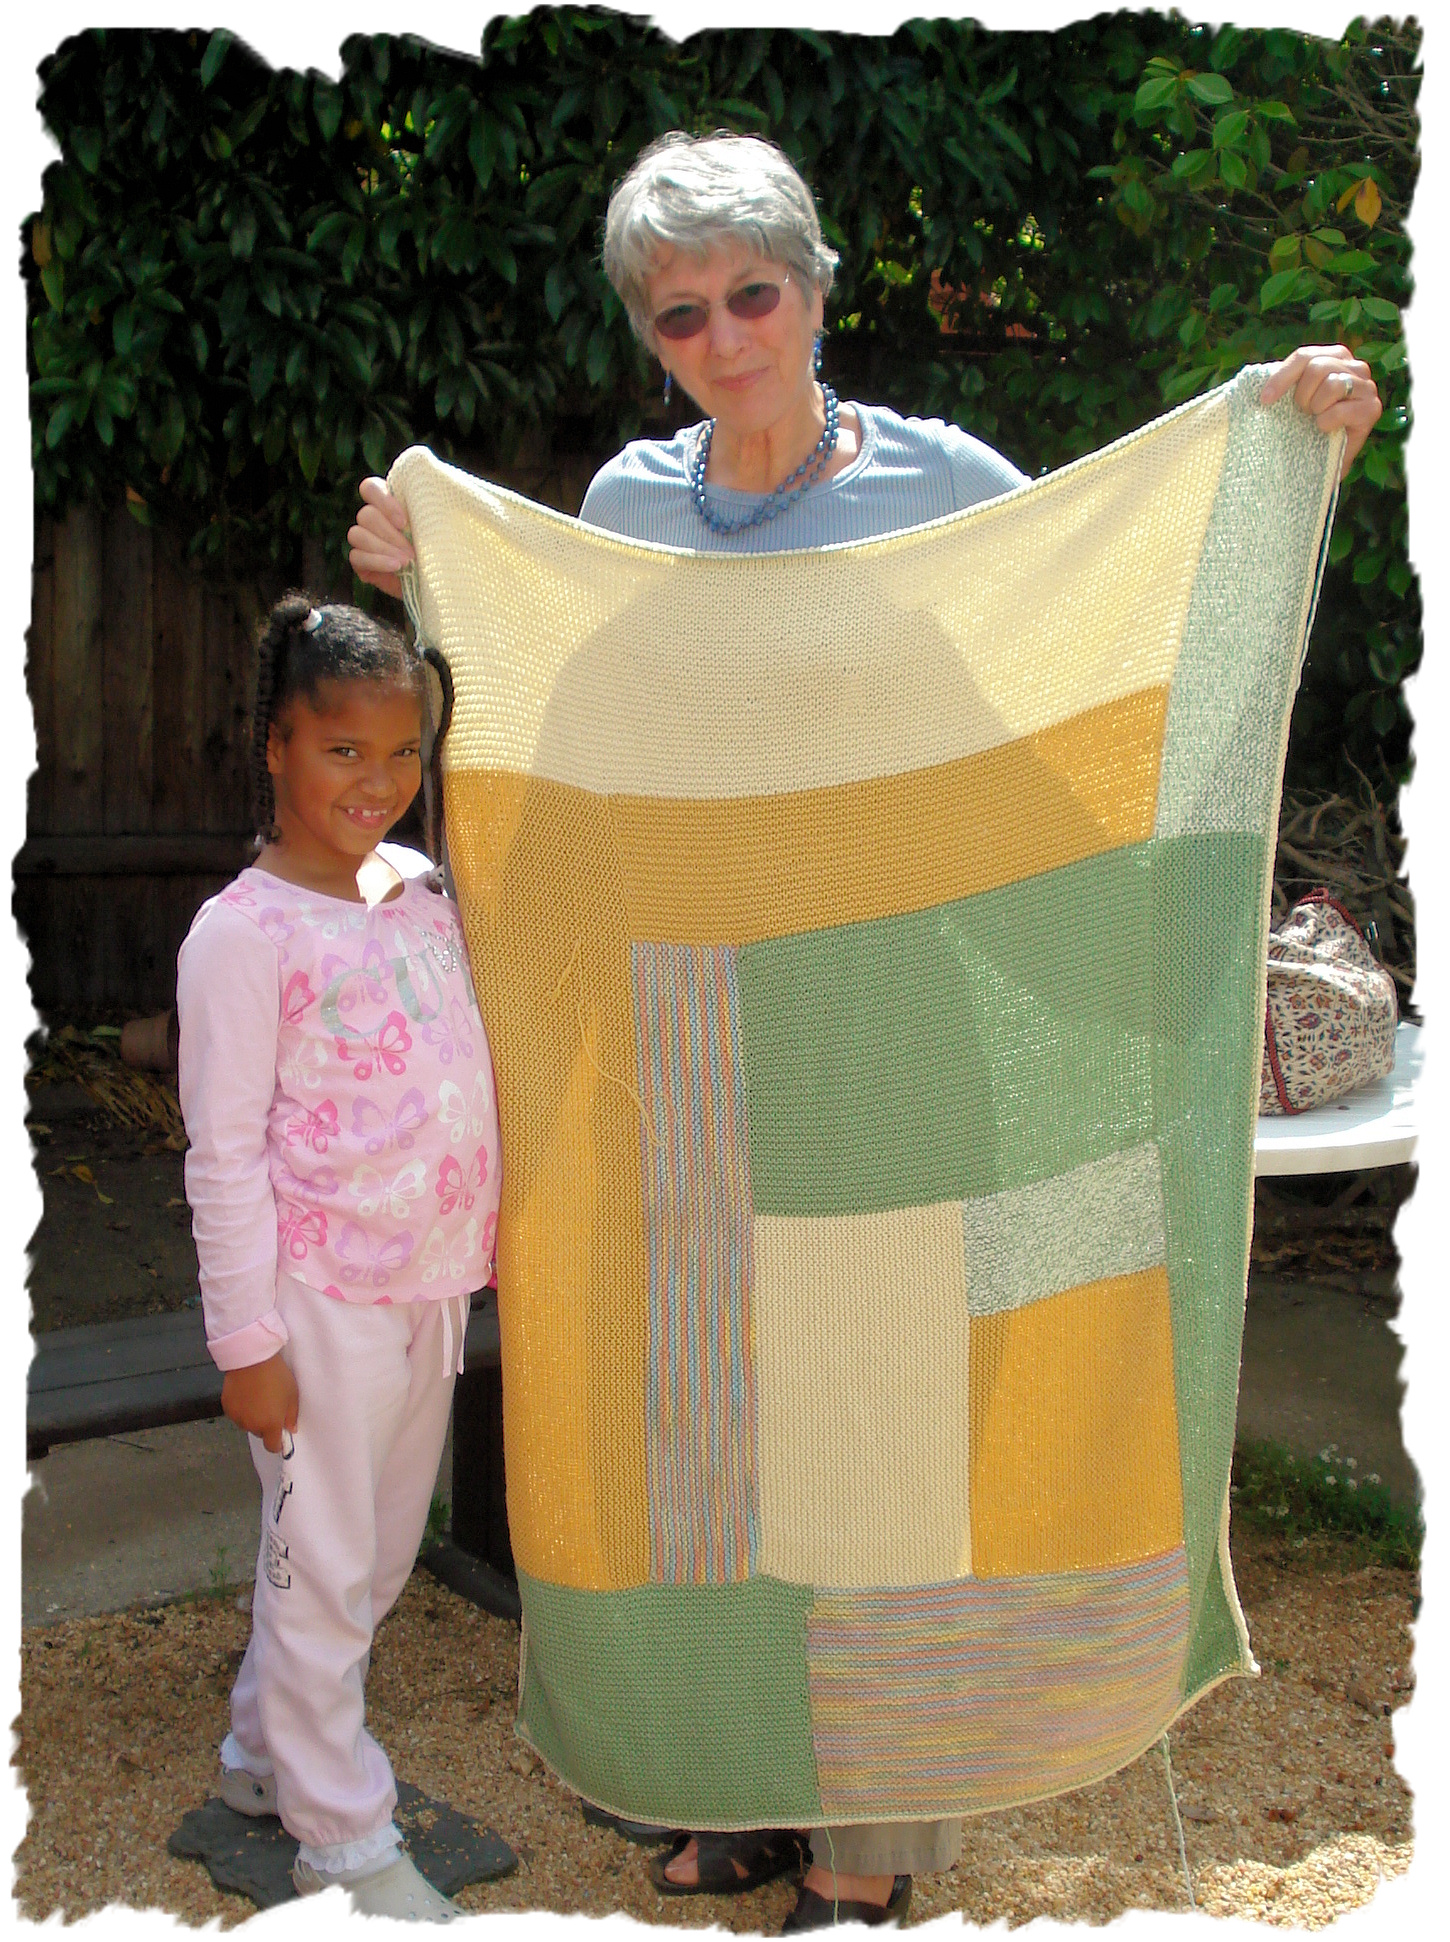 Nina and her granddaughter and Moderne Baby Blanket